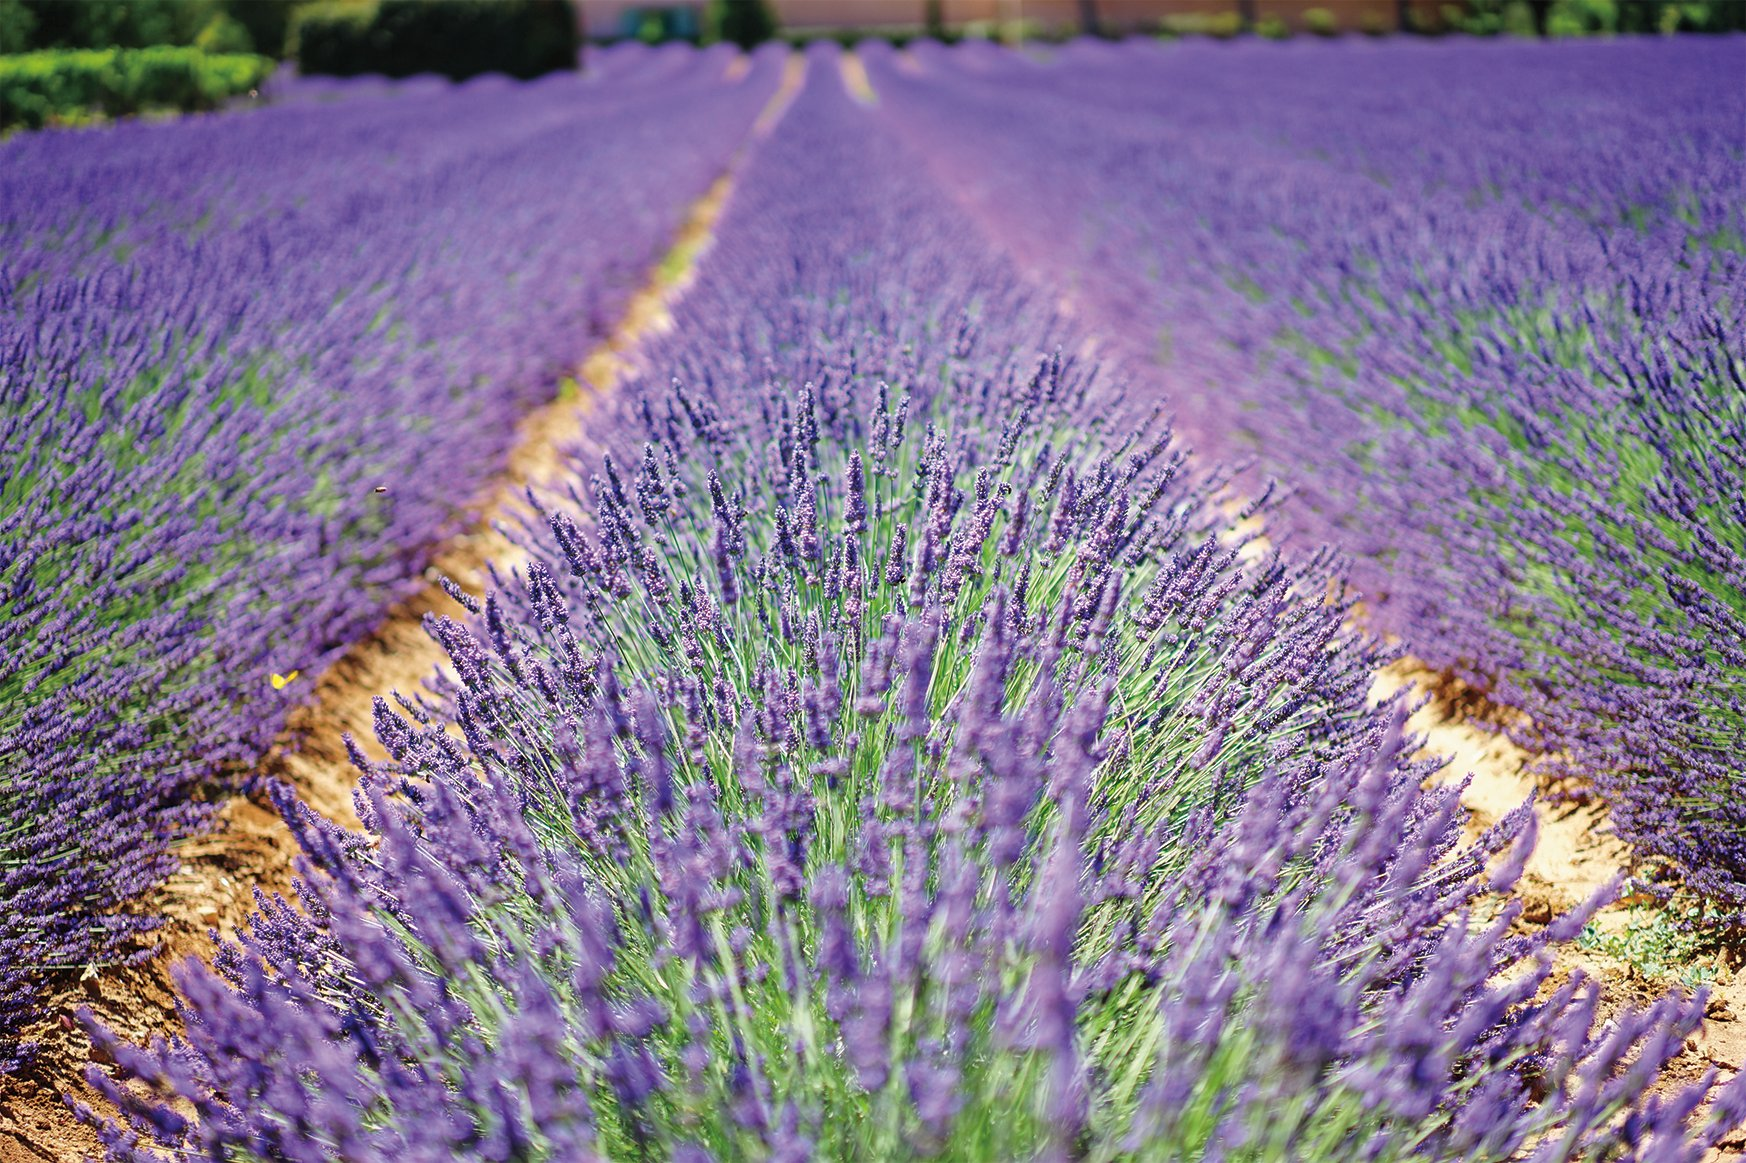 Lavender is used in fine fragrance, candles, and personal care products.